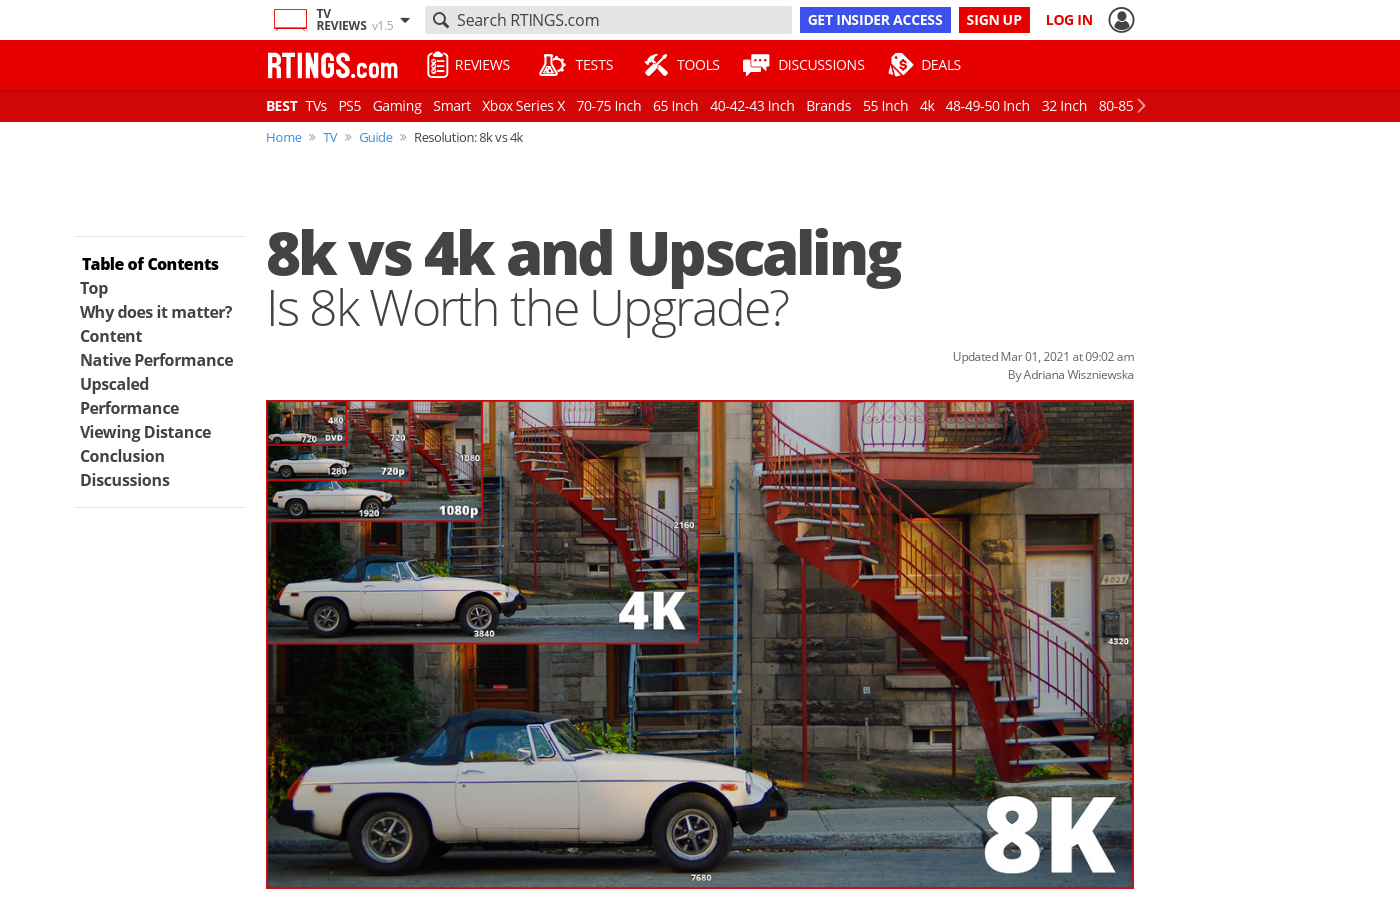 8k vs 4k and Upscaling: Is 8k Worth the Upgrade? - RTINGS com